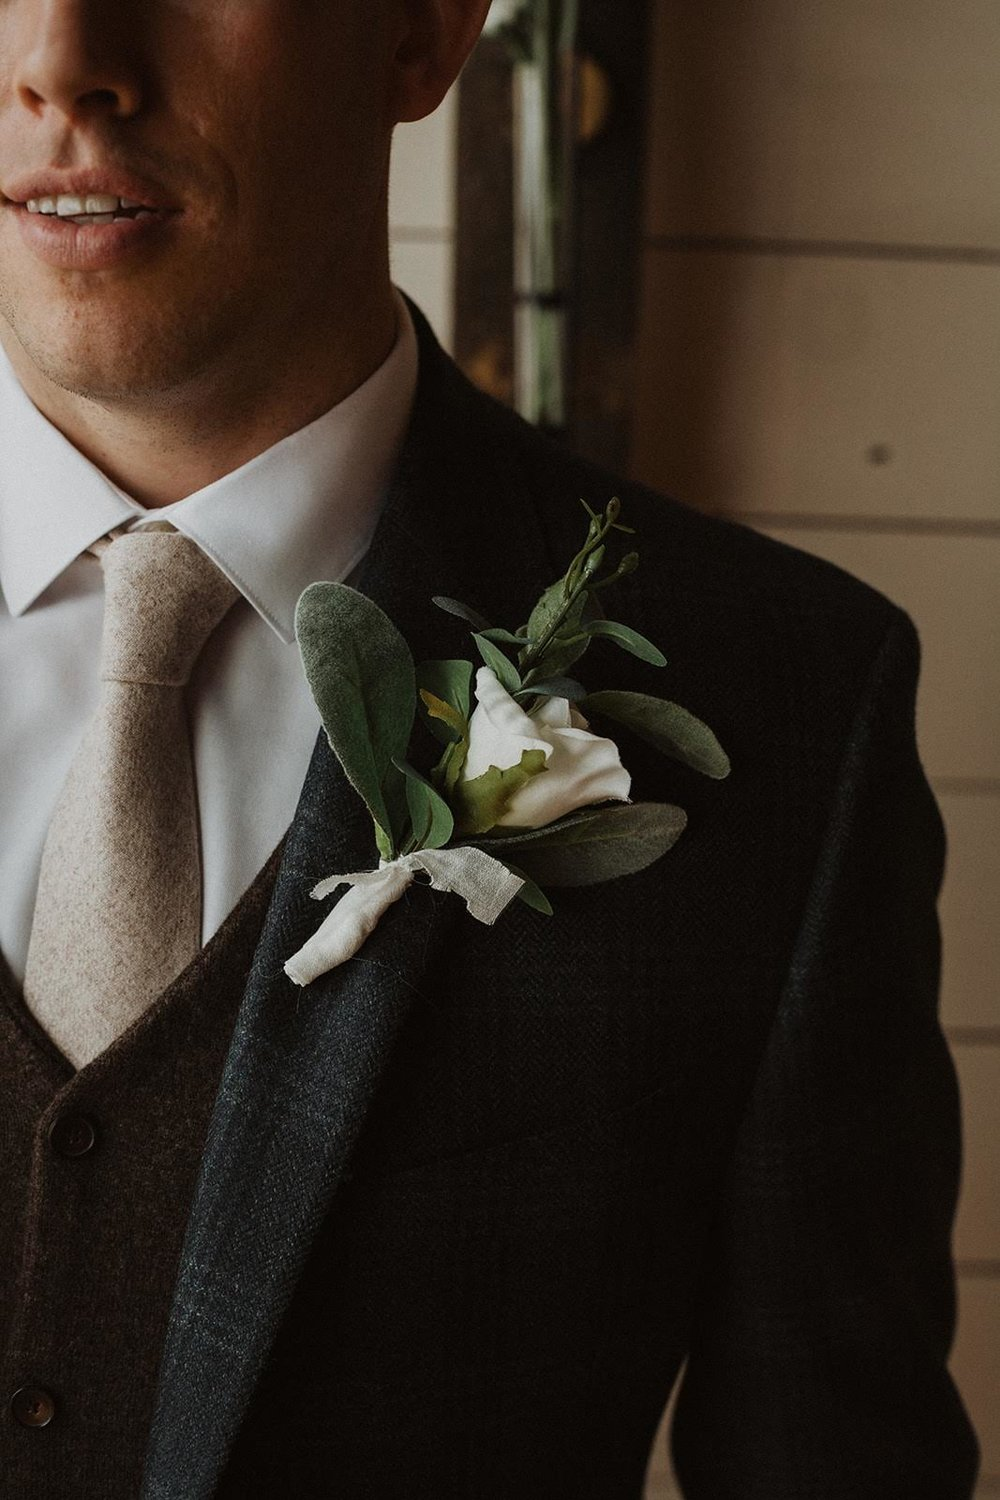 Jacob's plaid suit, brown vest, light brown tie and boutonniere is what texture dreams are made of!